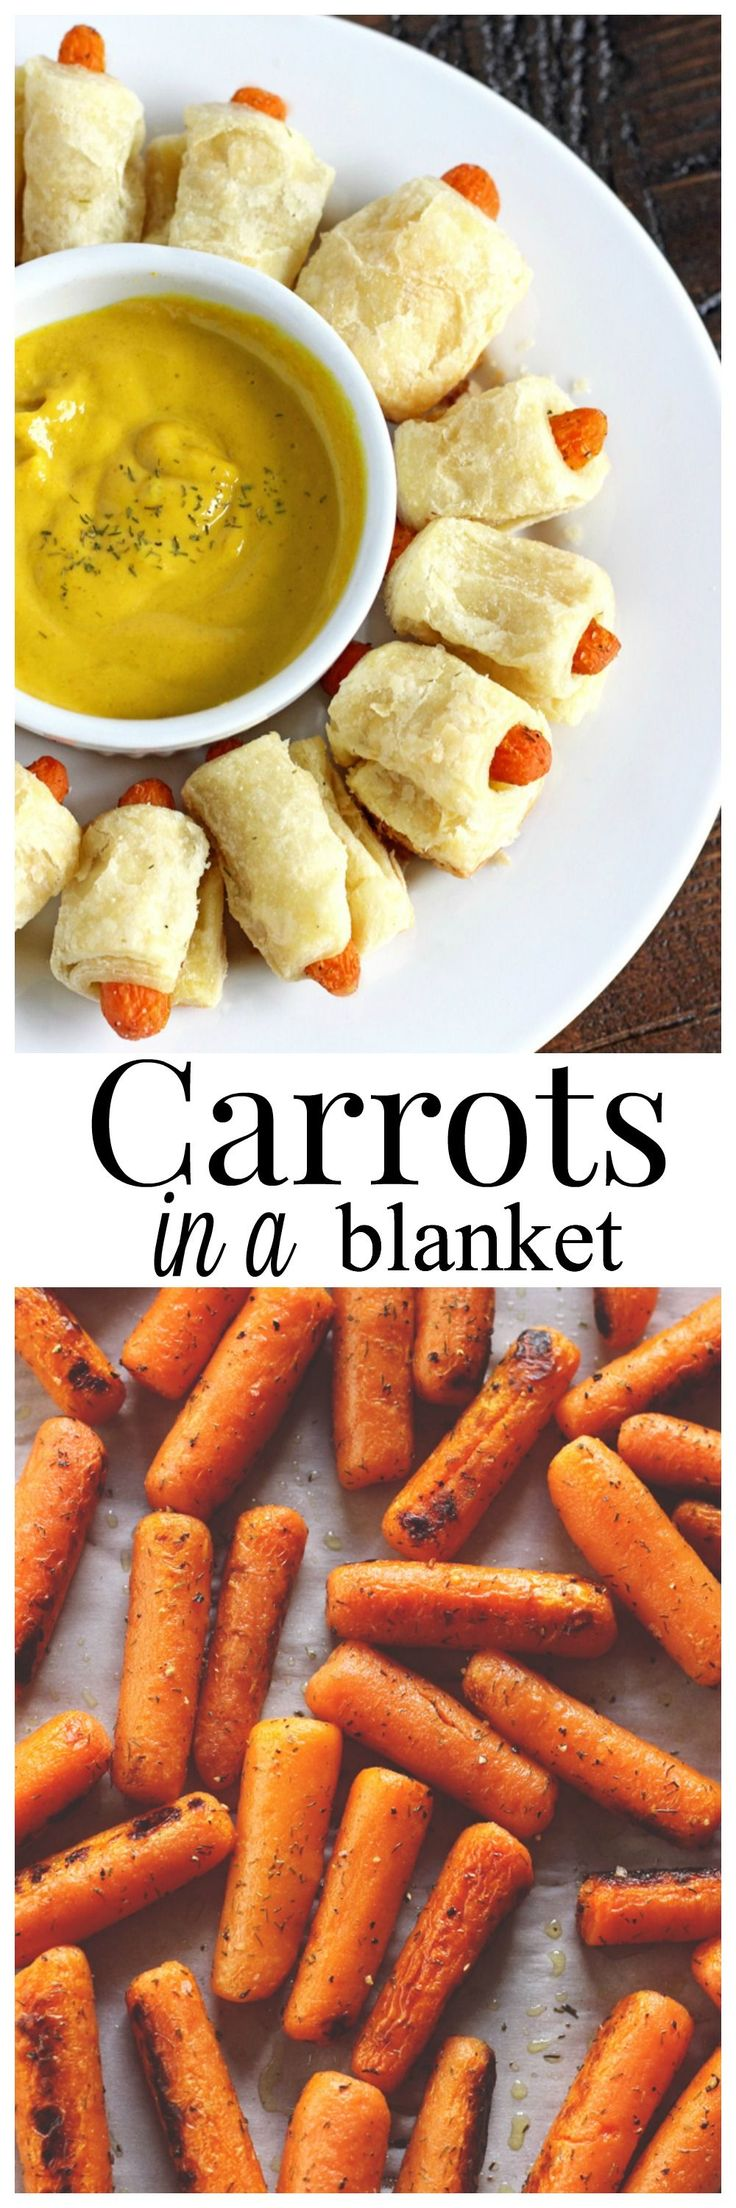 Carrots in a Blanket! A healthy, more delicious alternative to pigs in a blanket. Enjoy this appetizer that's not only good for you but cruelty free! NeuroticMommy.com #vegan #appetizers